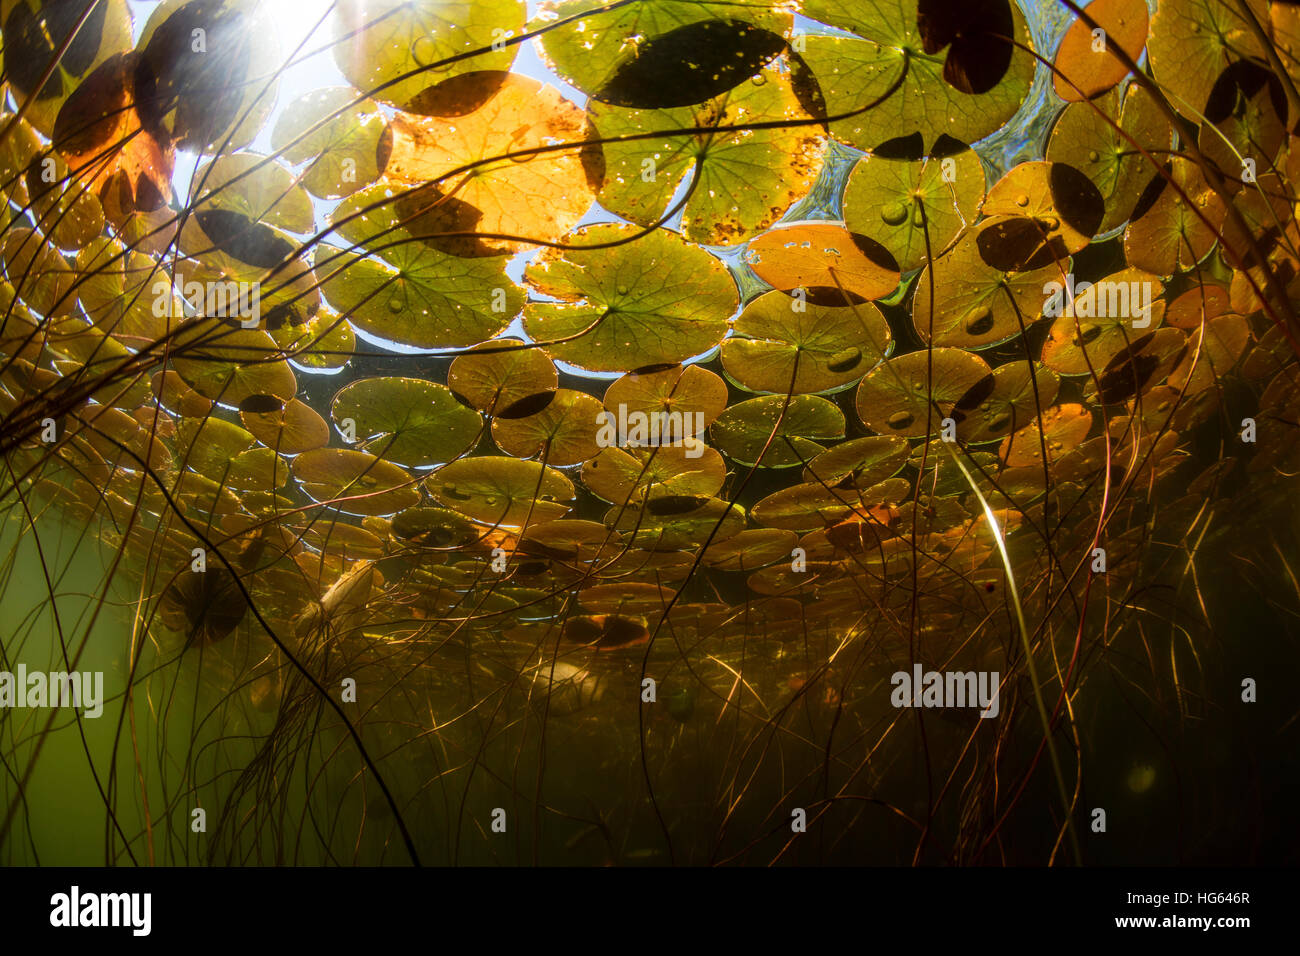 Sunlight shines down on lily pads growing on a lake in New England. - Stock Image